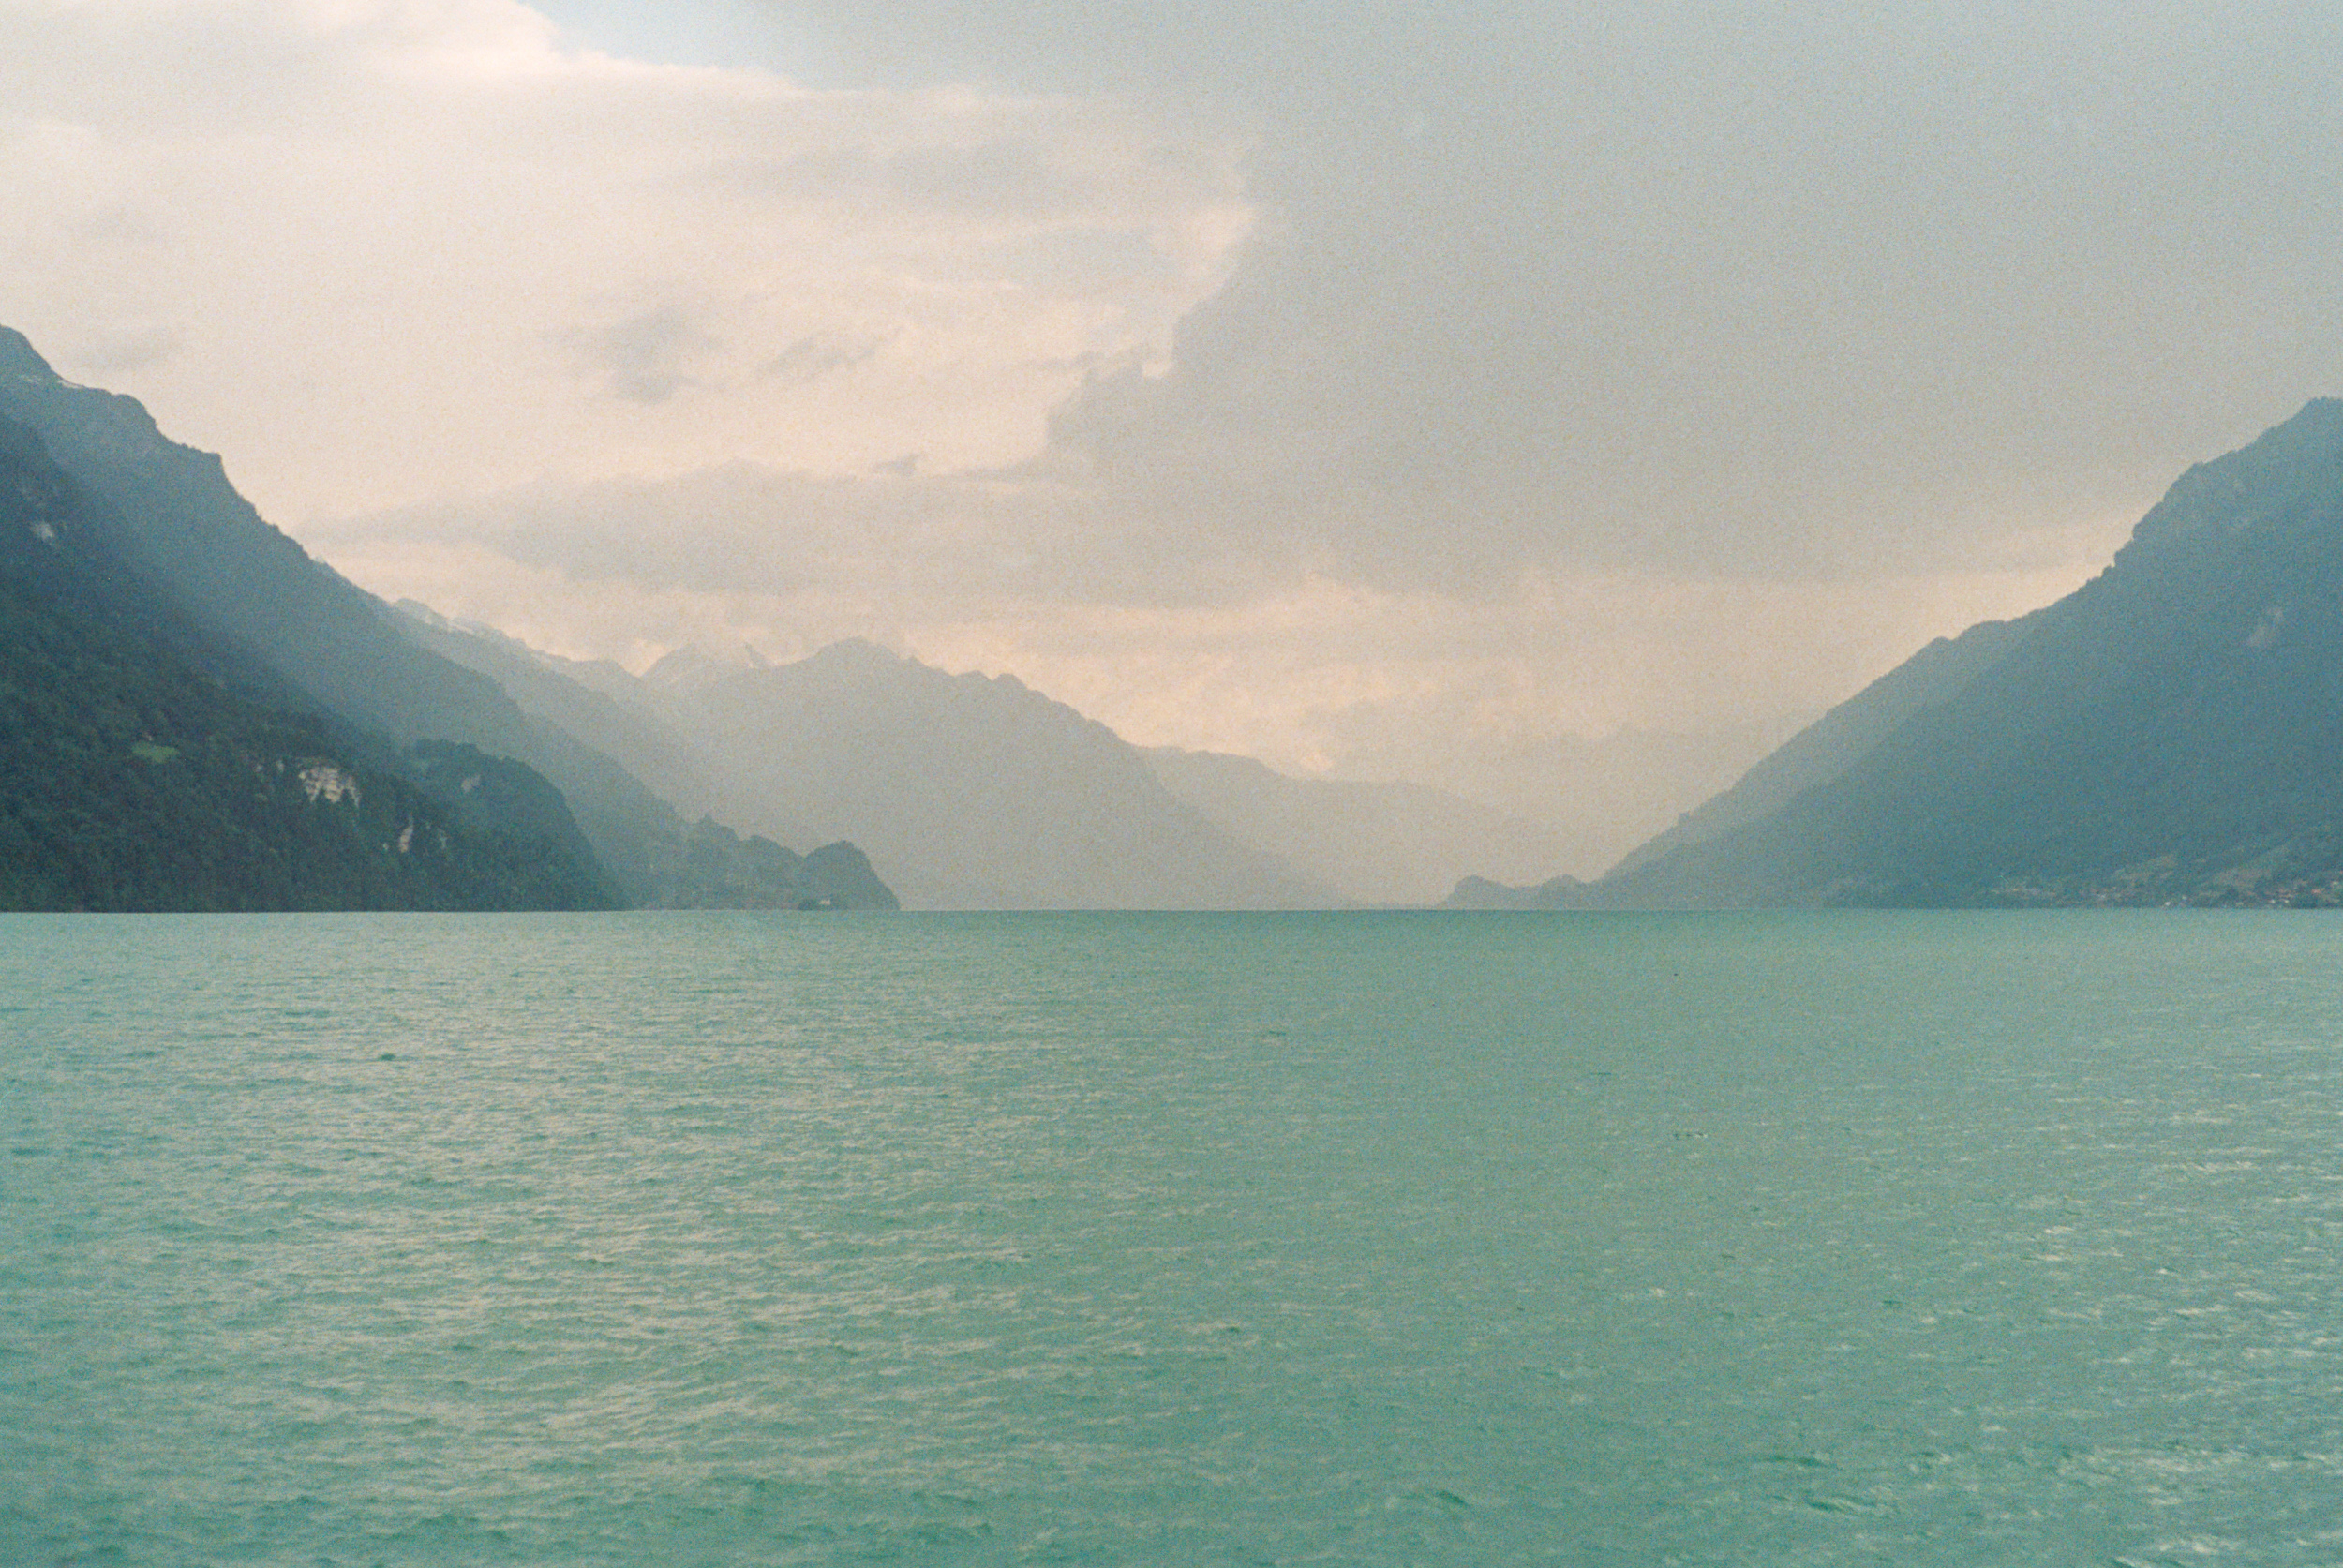 Whizzing by glacier blue lakes, seen from my train window between Lucerne and Interlaken. HEAVEN!